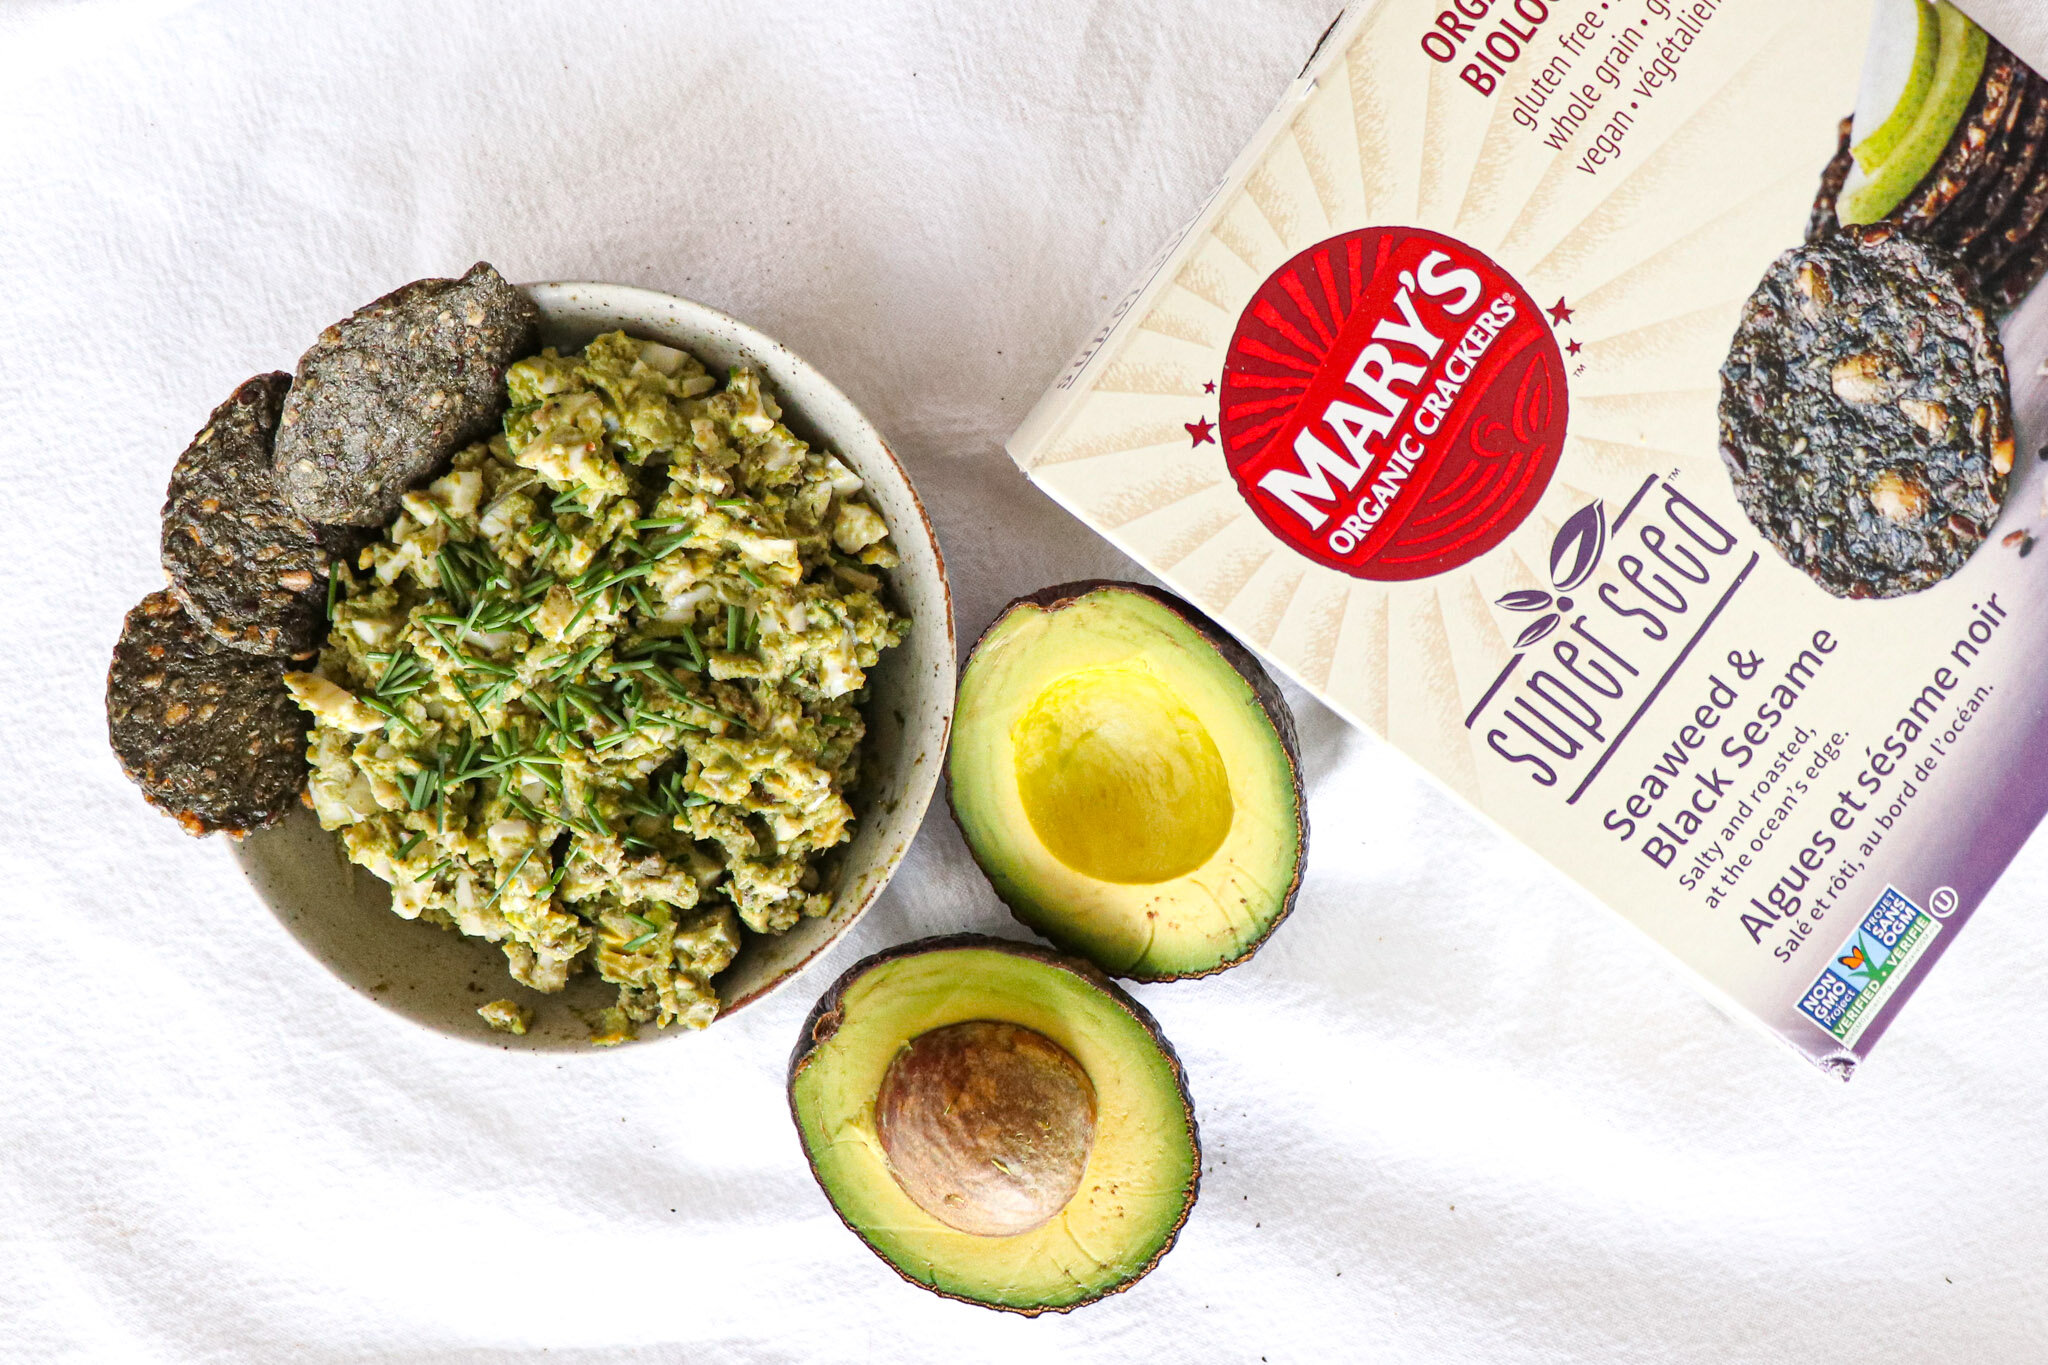 Marys Gone Crackers - egg and avocado salad-3.jpg